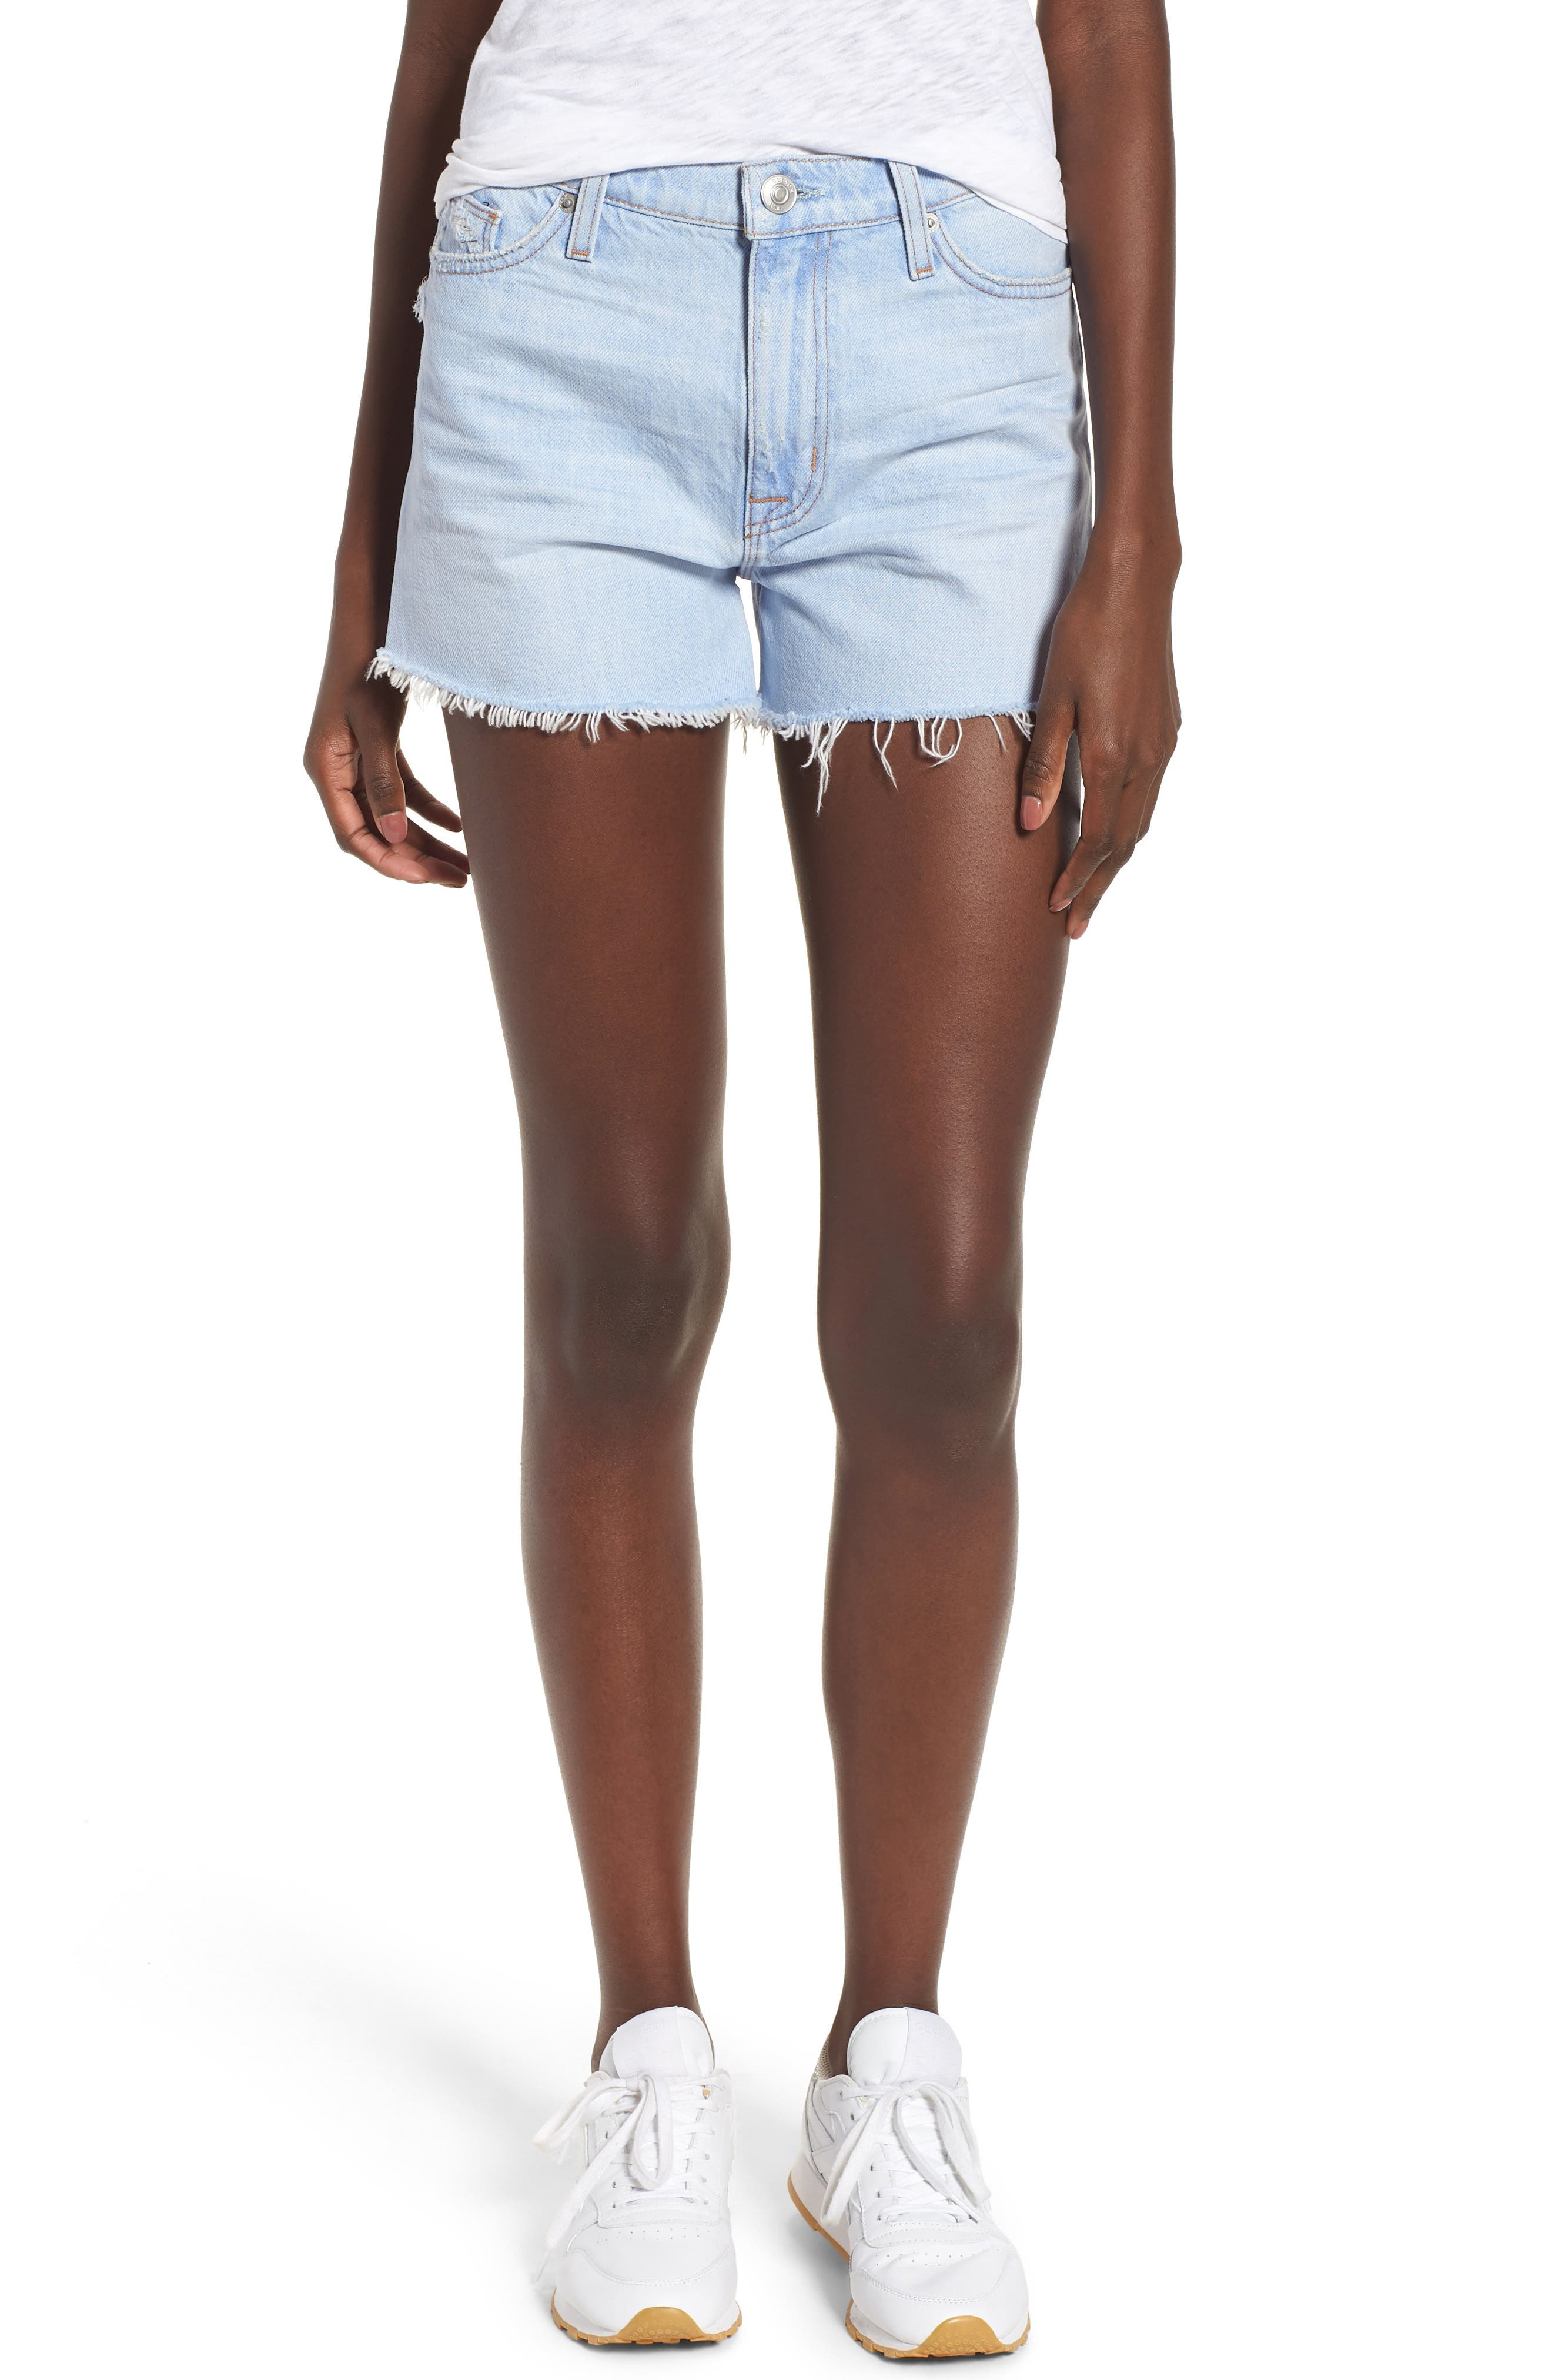 Sade Cutoff Denim Shorts,                         Main,                         color, Treasure